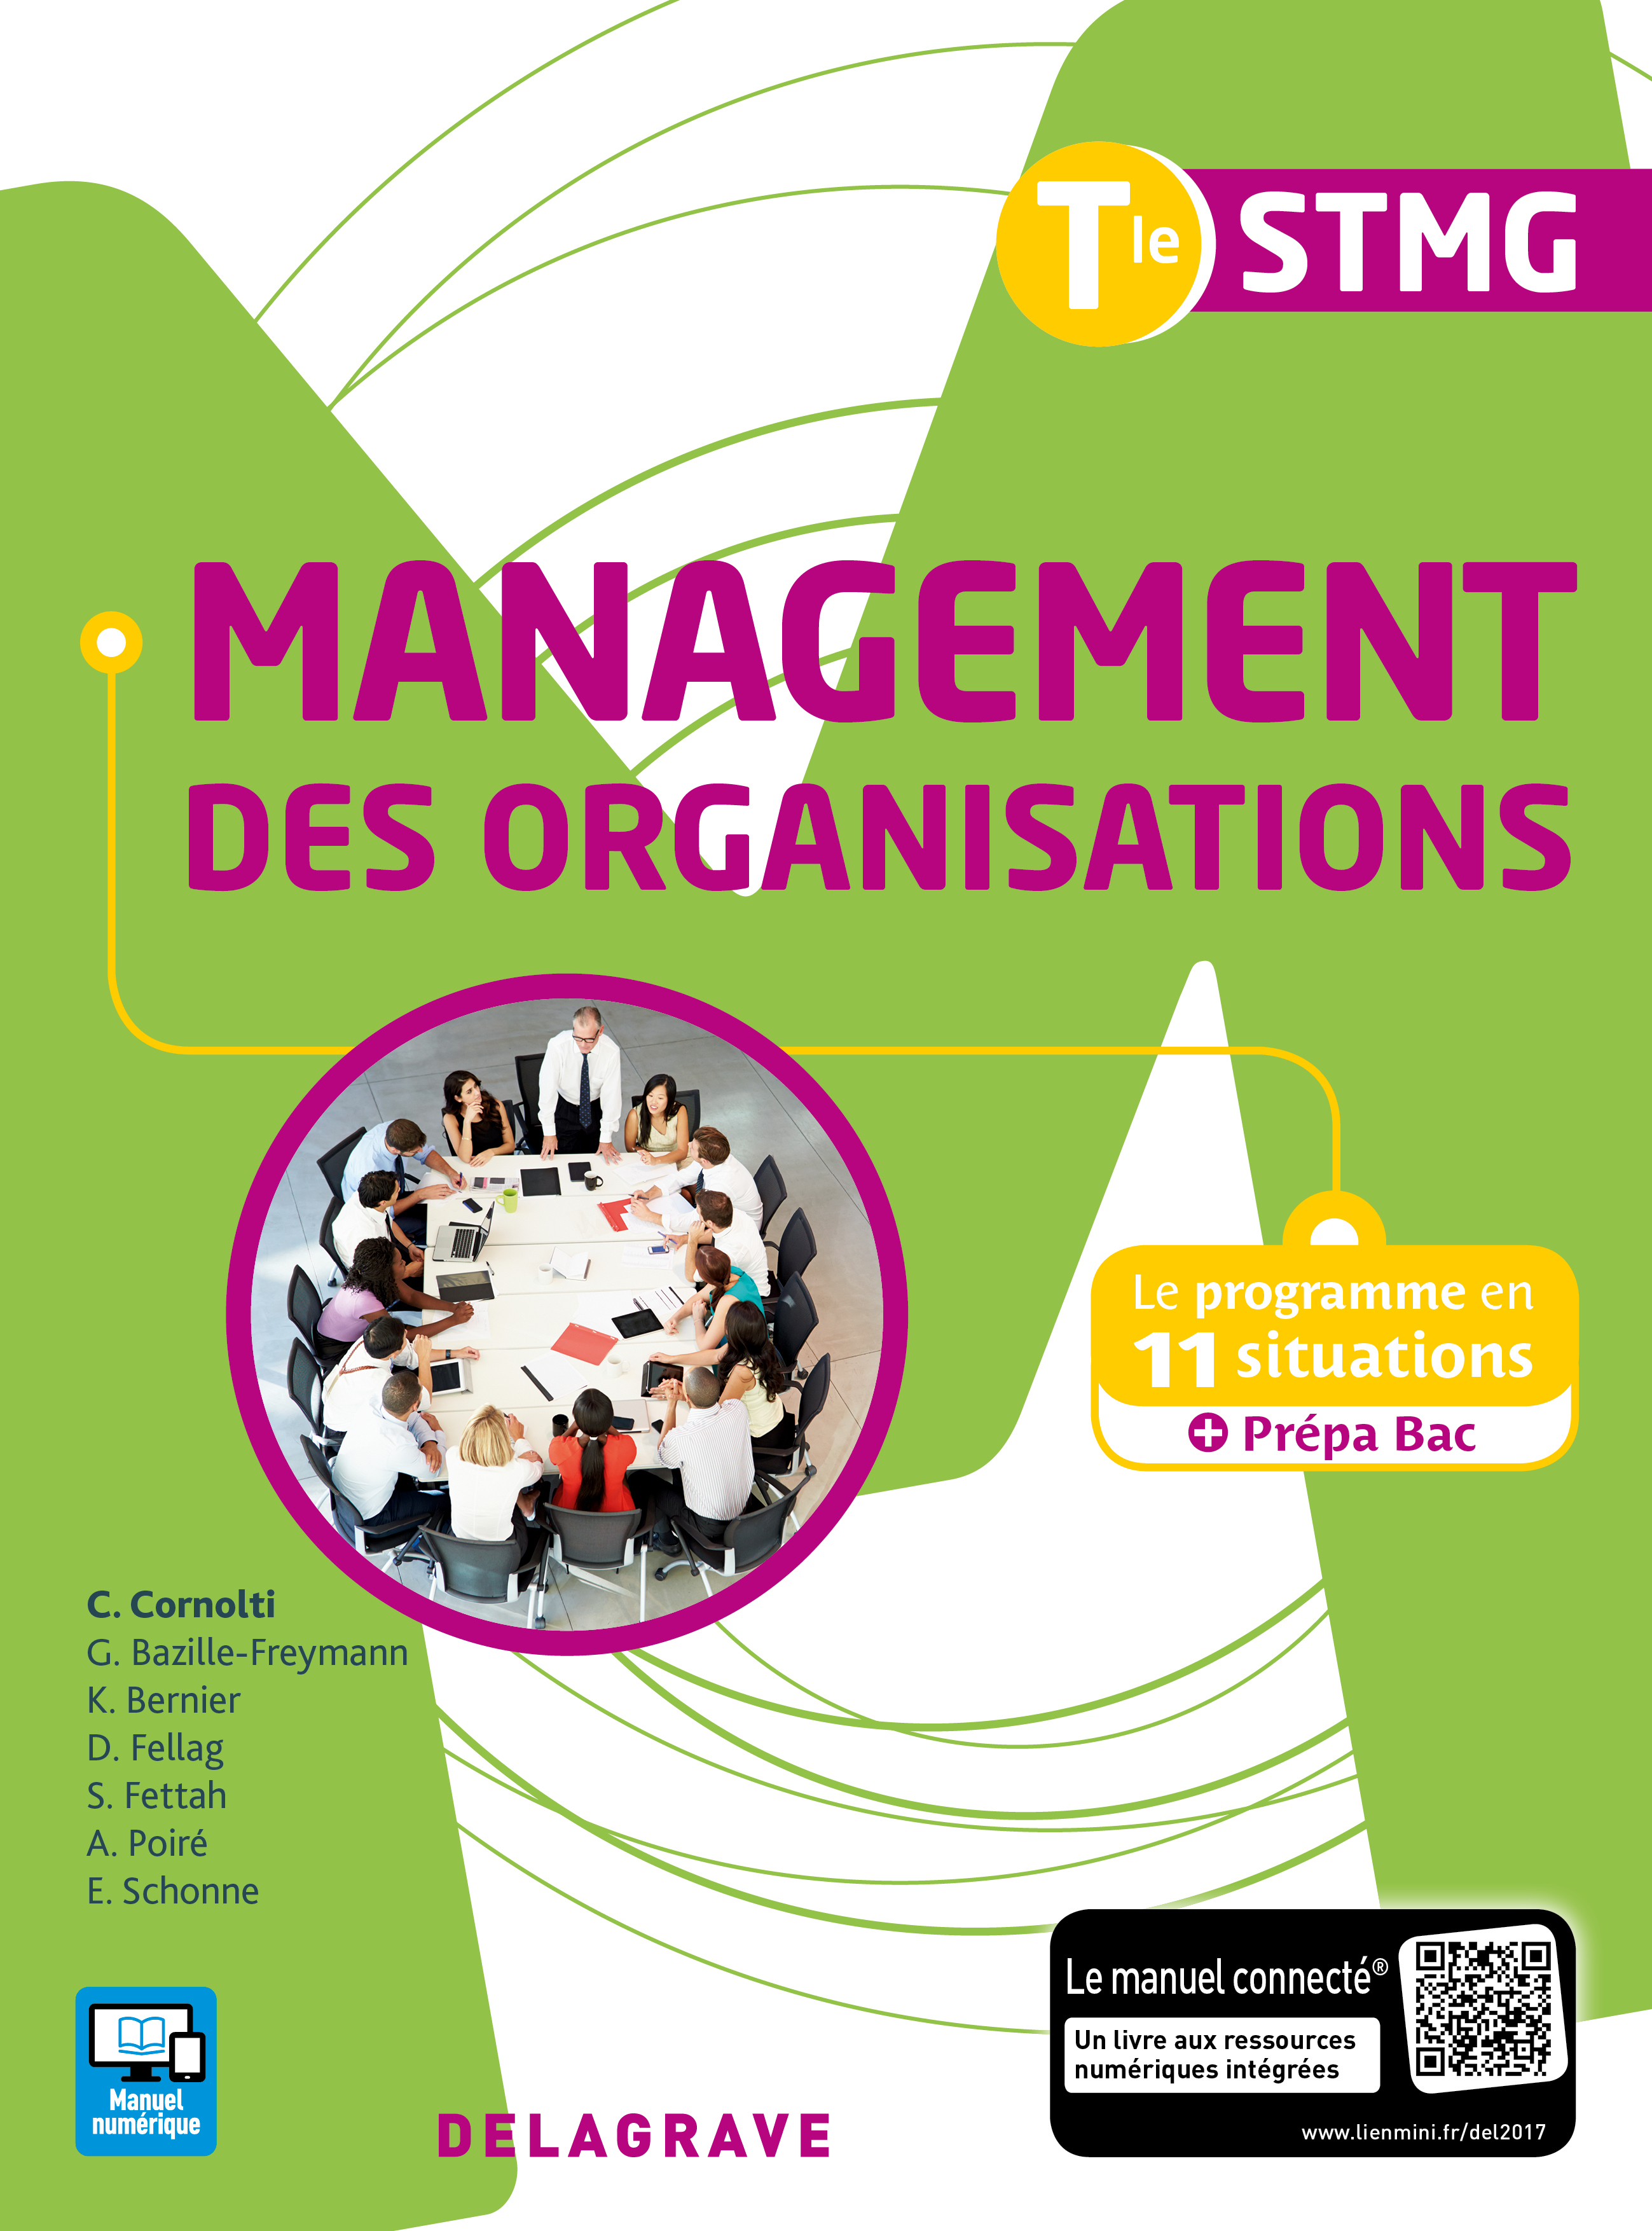 MANAGEMENT DES ORGANISATIONS TLE STMG ELEVE 2017